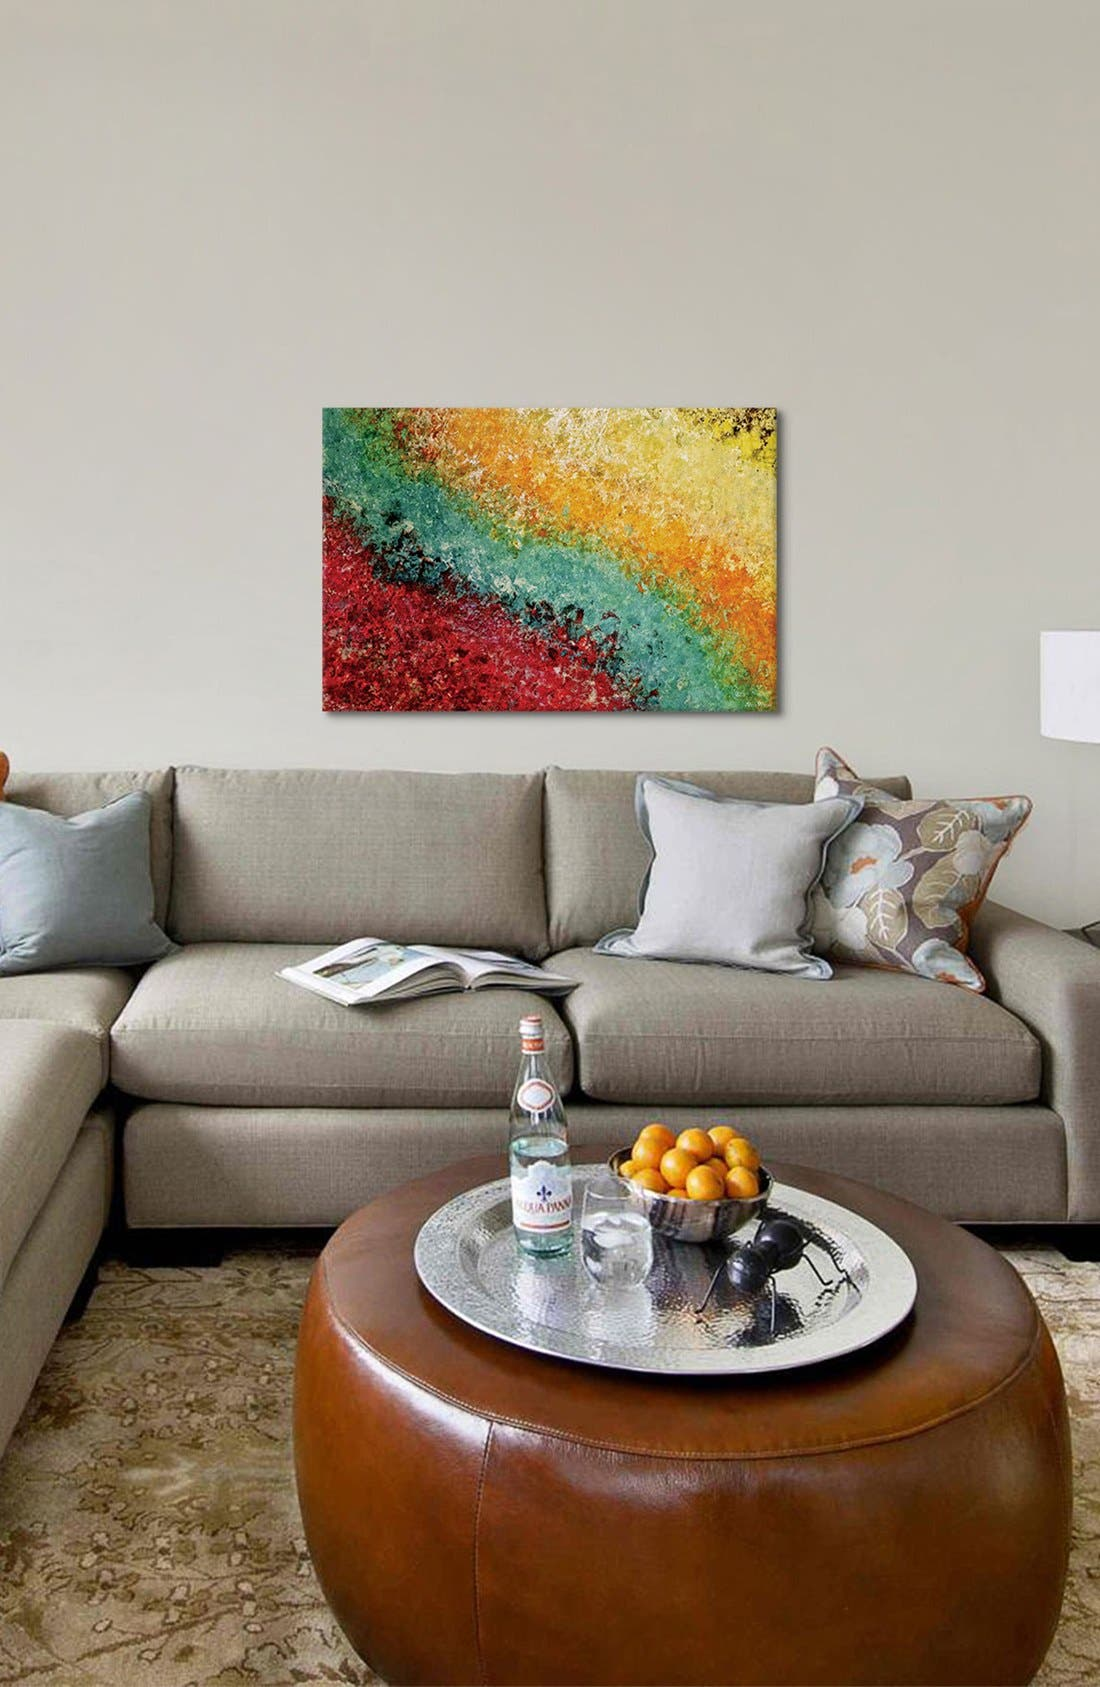 'Enchanted Lullaby' Giclée Print Canvas Art,                             Alternate thumbnail 2, color,                             Yellow